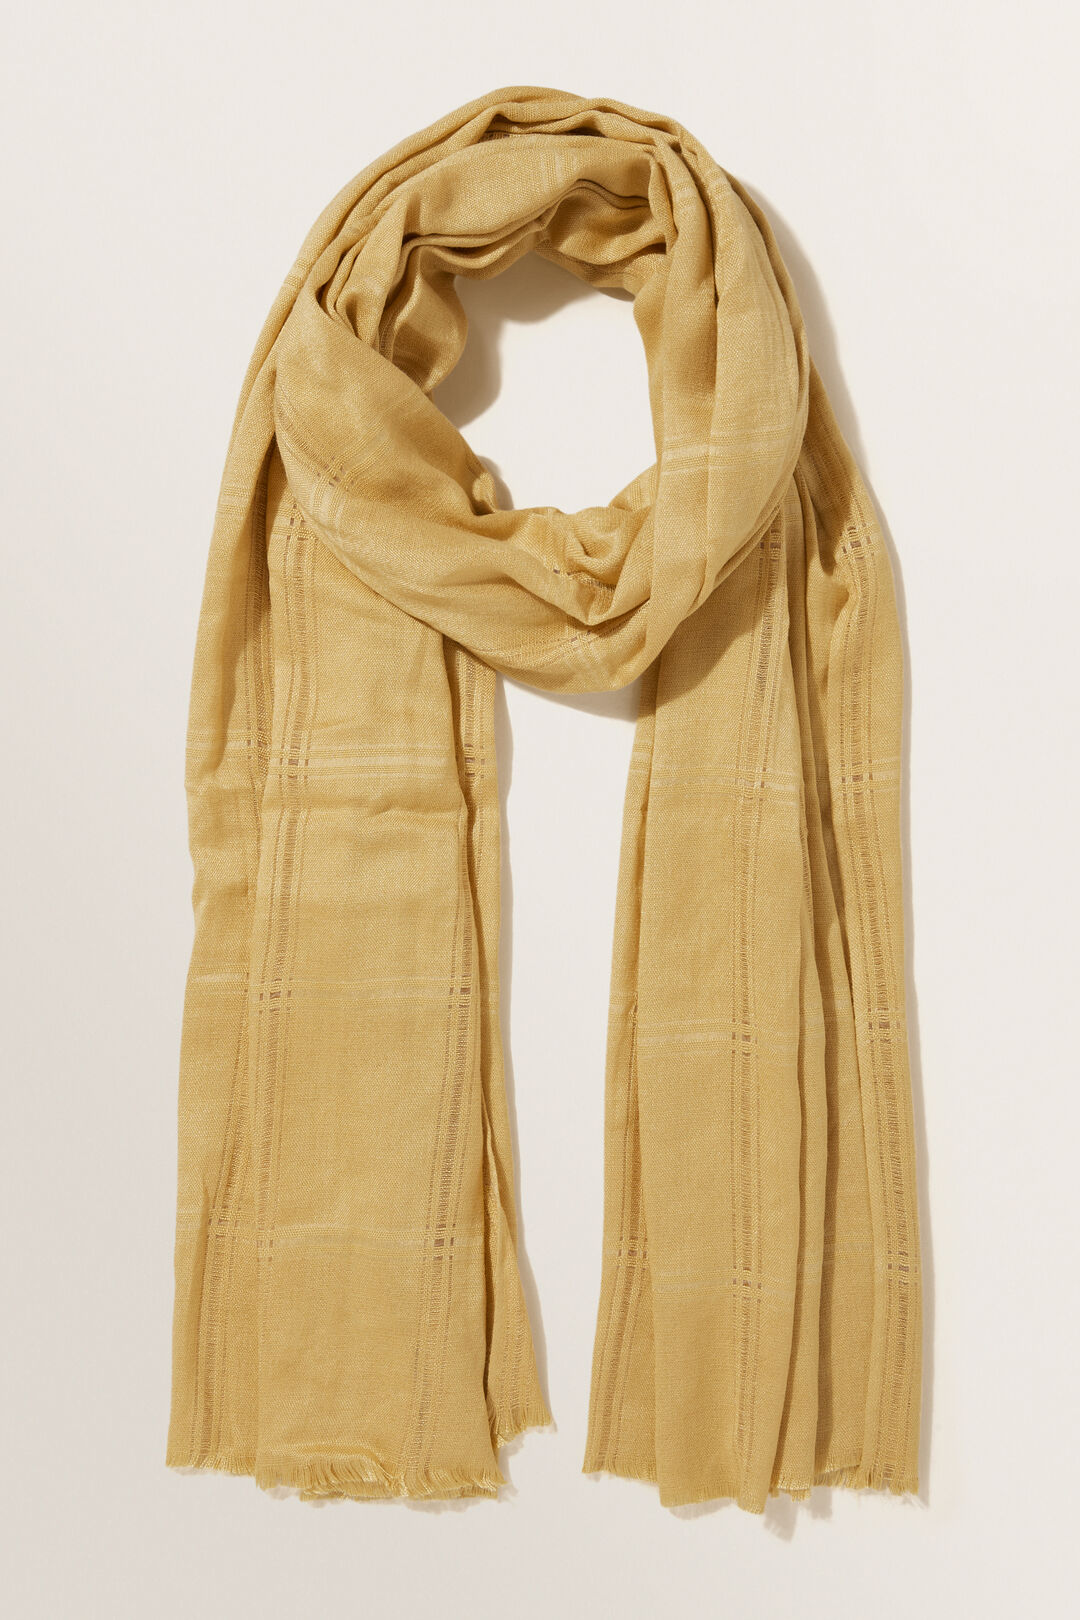 Textured Wool Blend Scarf  FAWN  hi-res